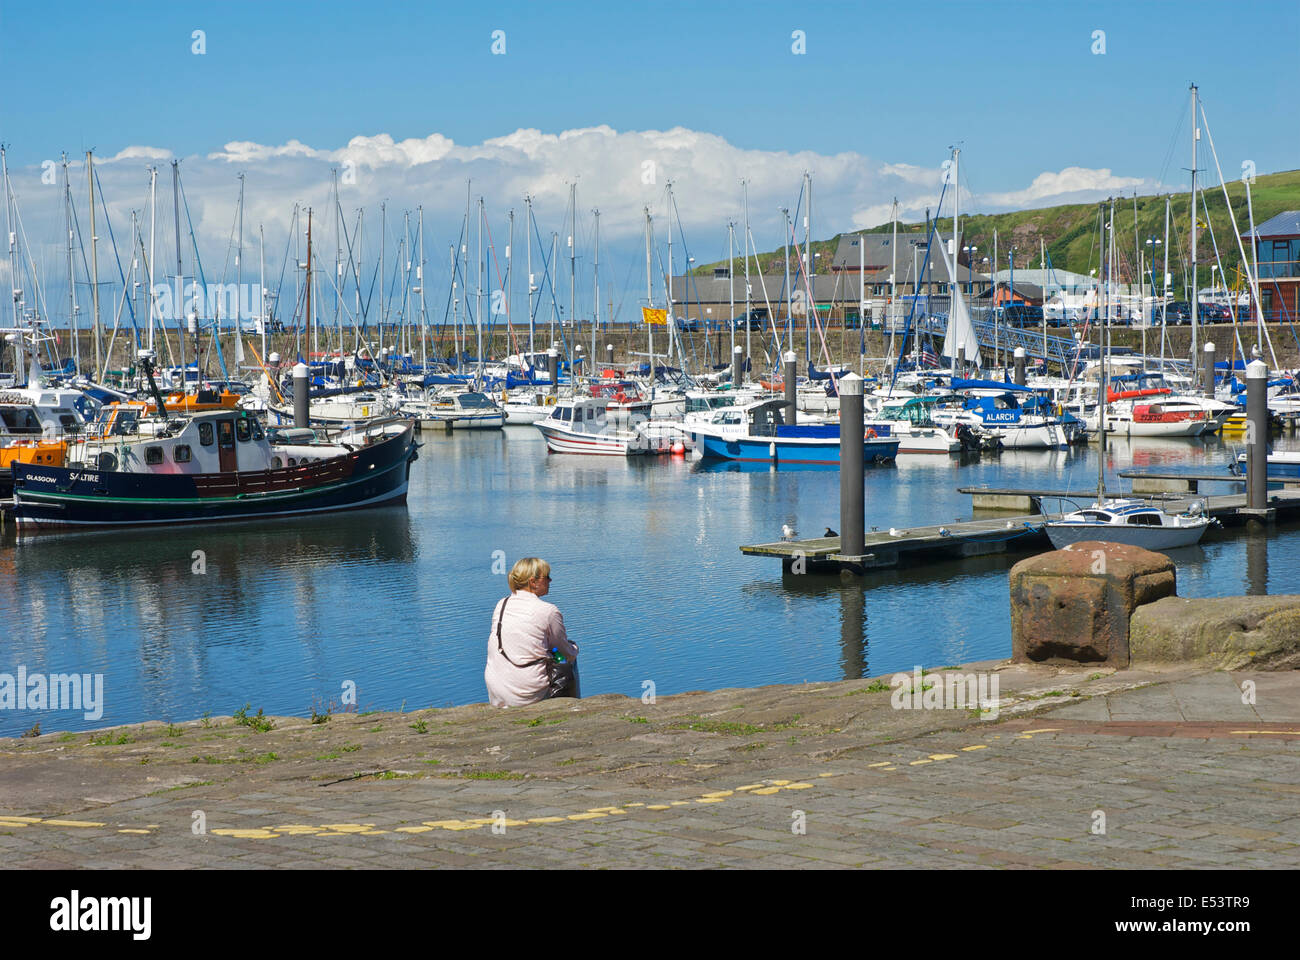 Woman sitting next to the marina, Whitehaven, West Cumbria, England UK - Stock Image